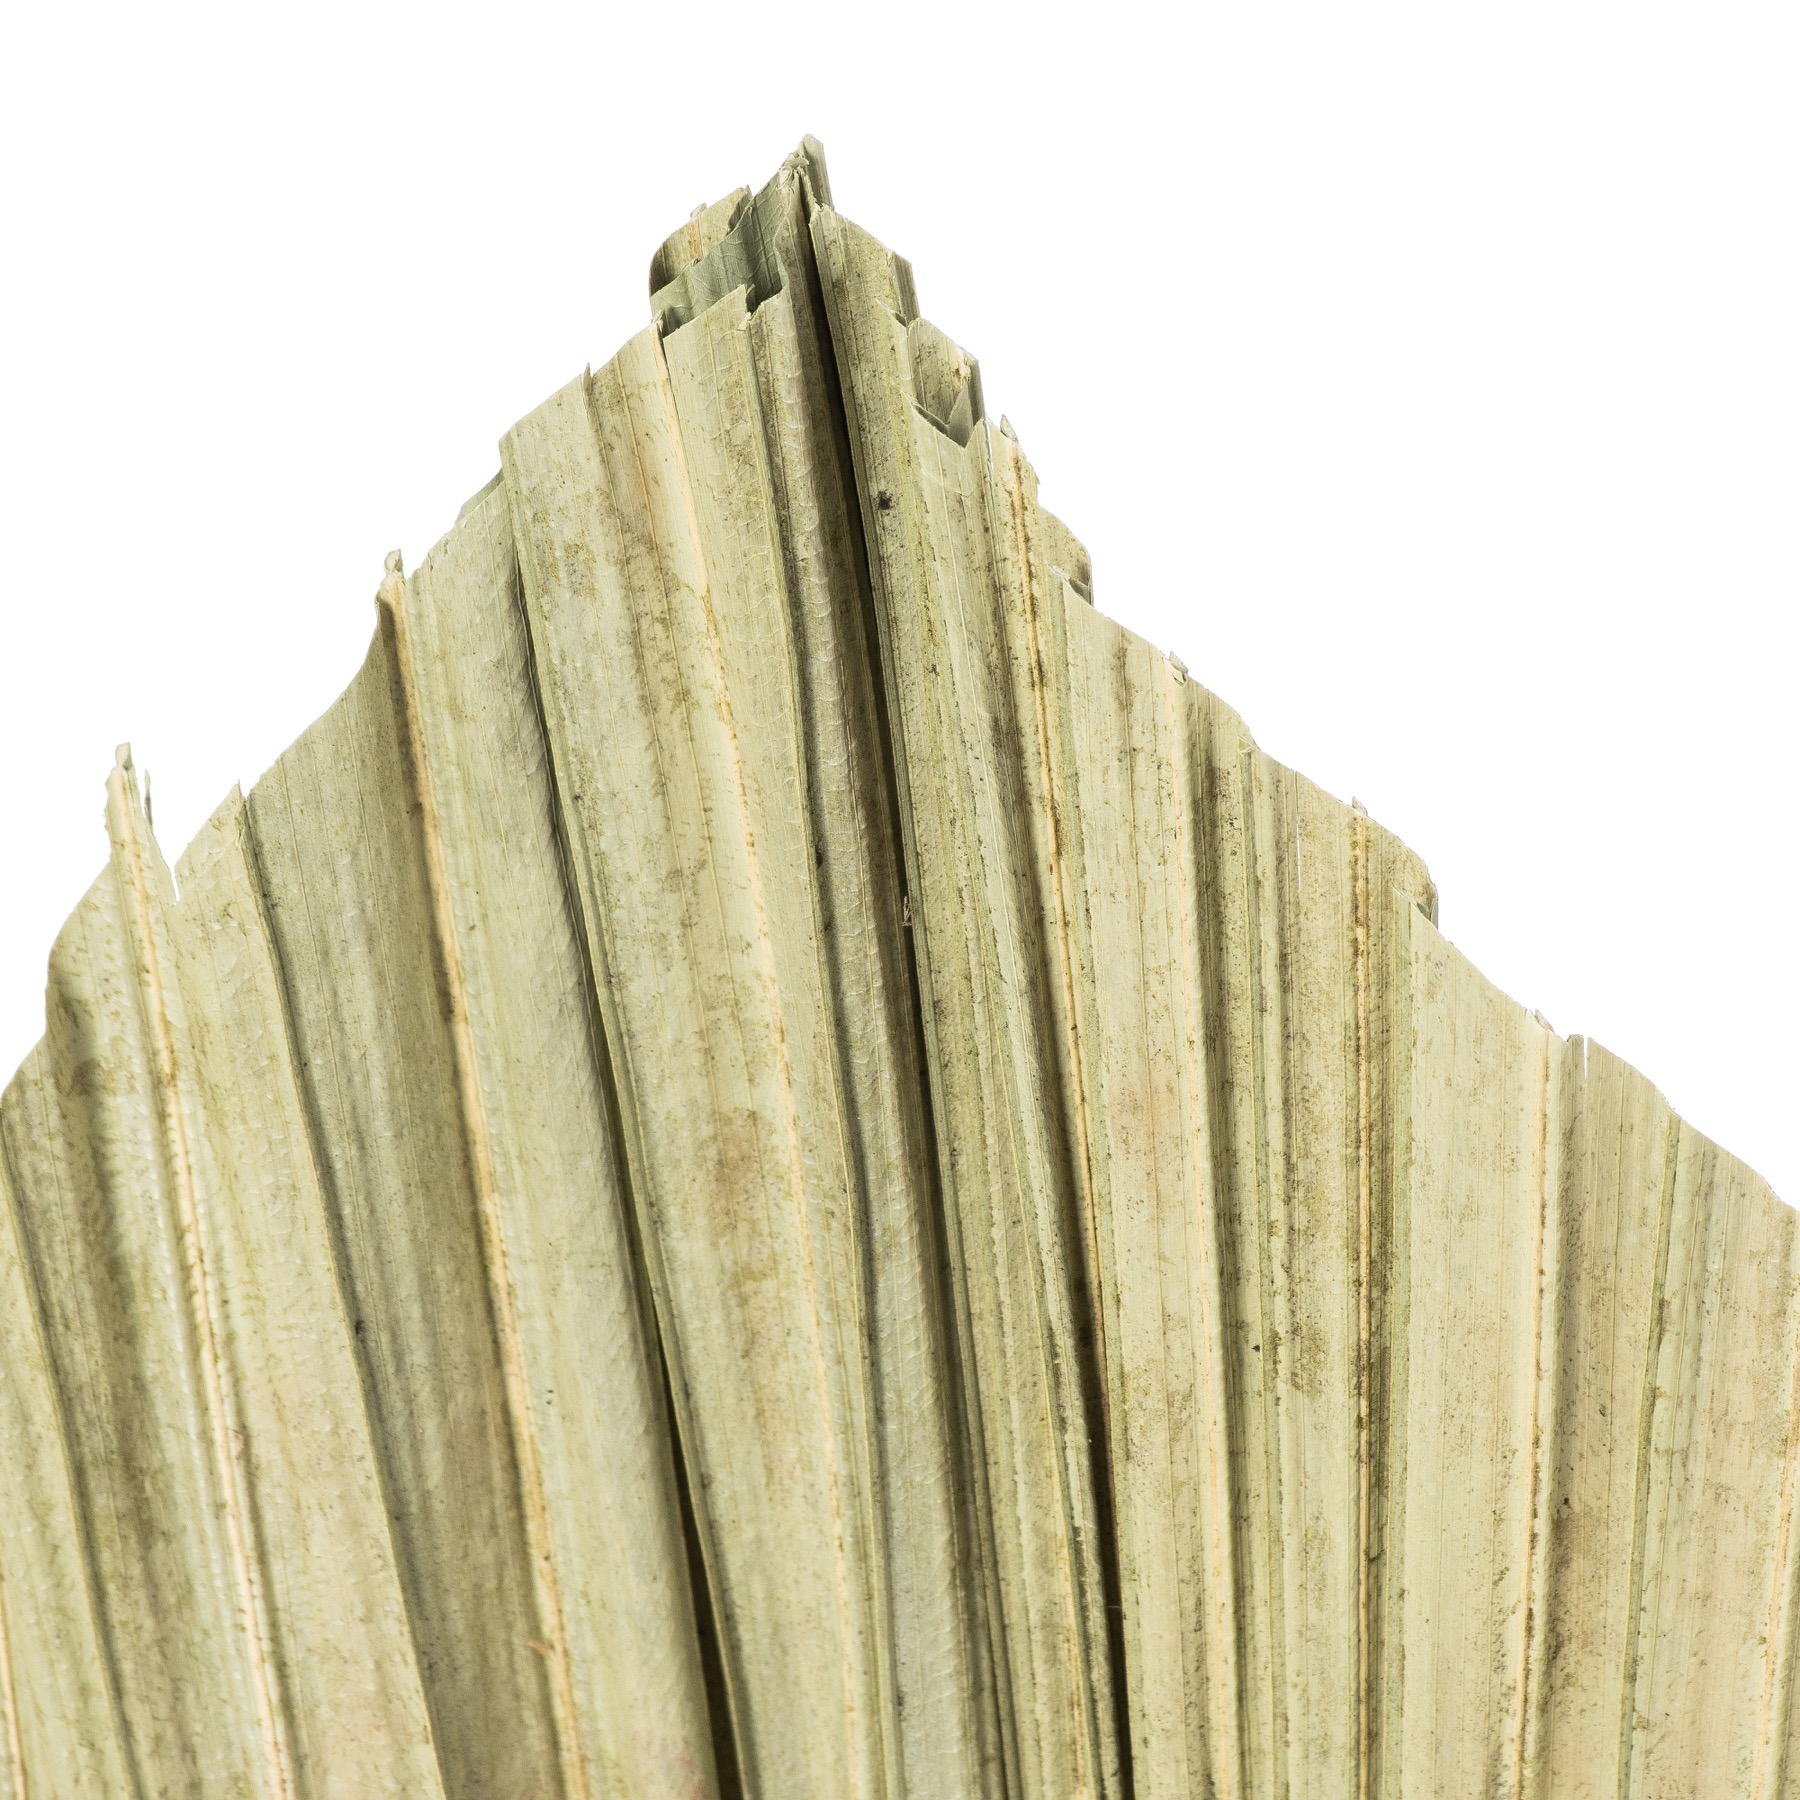 Dried Natural Fan Palm - Image 3